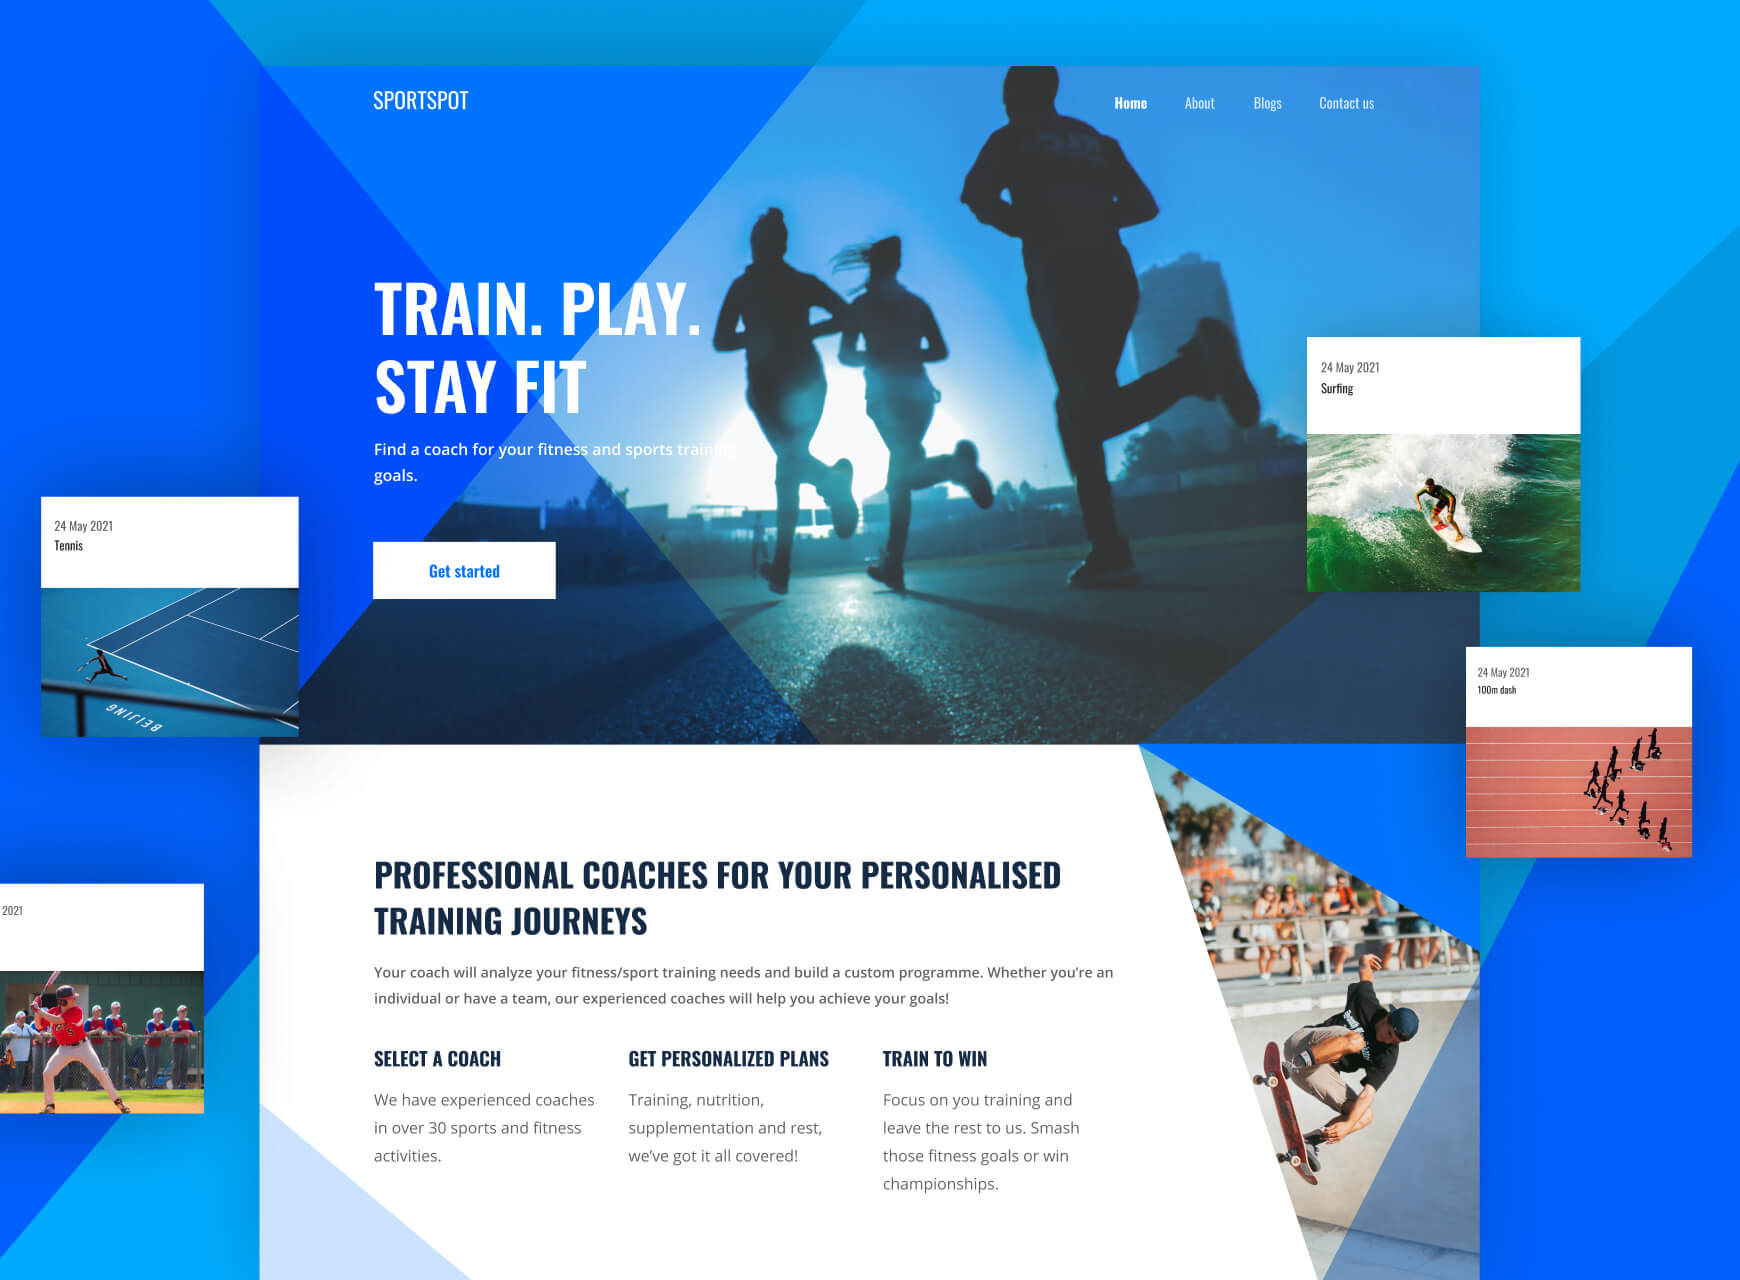 Website home page and image cards for Sportspot